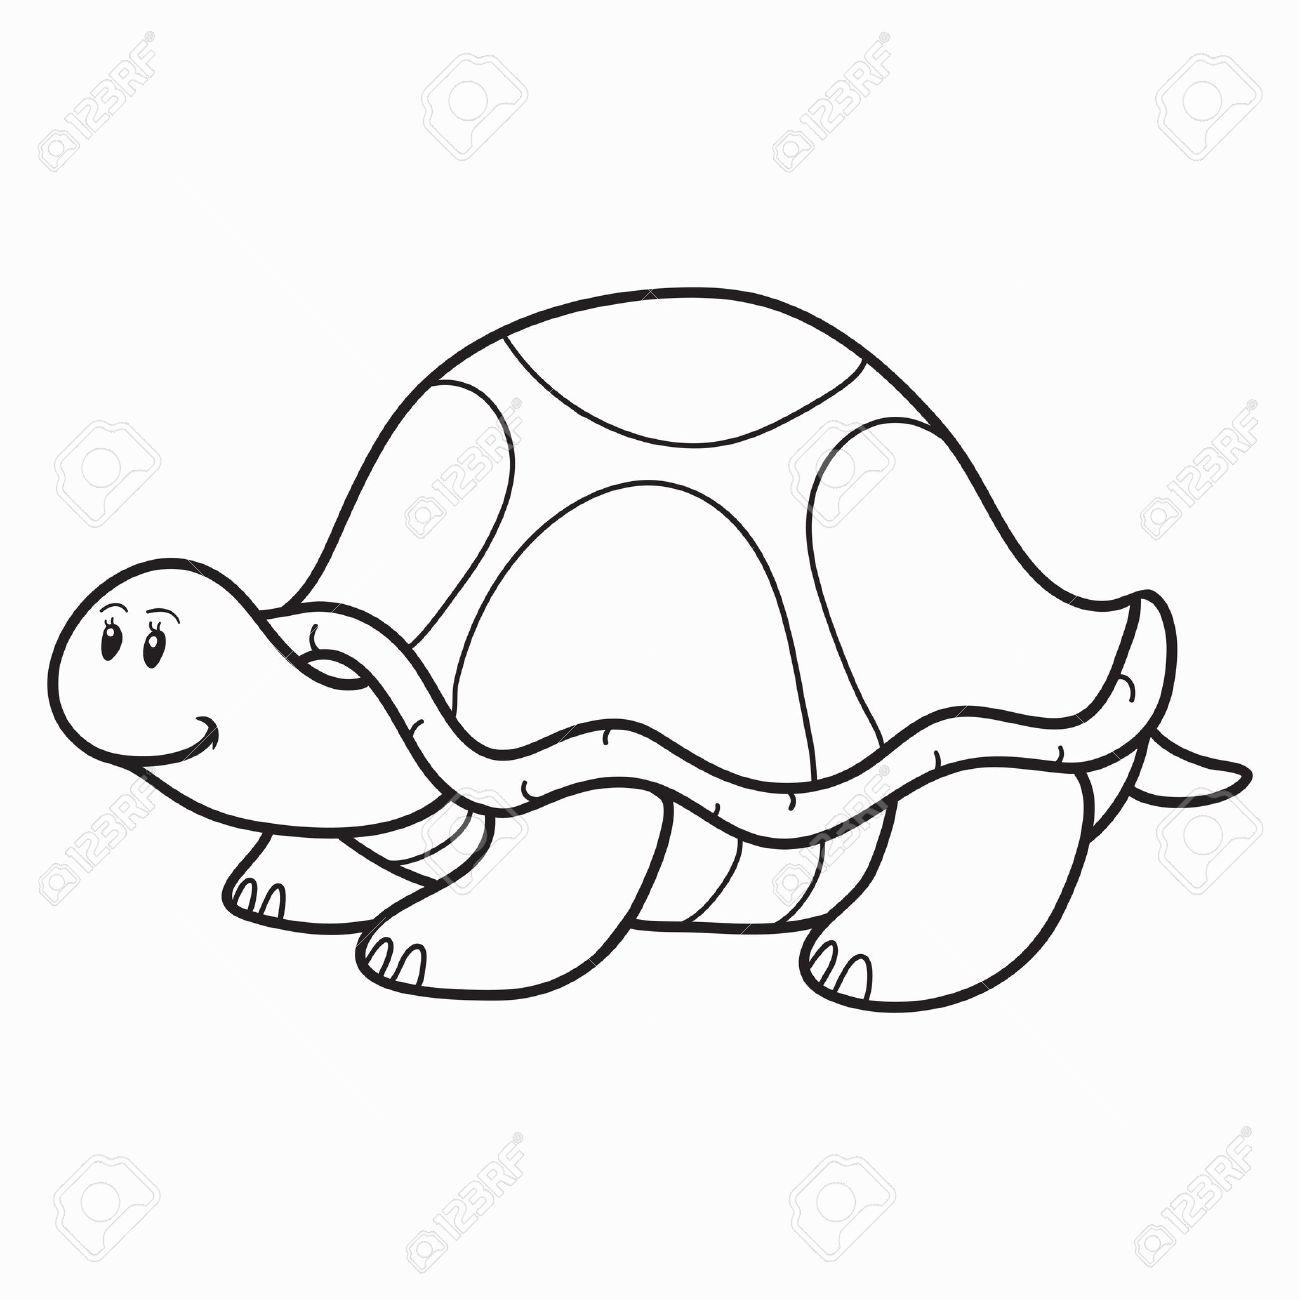 Coloring Book (turtle) Royalty Free Cliparts, Vectors, And Stock ...